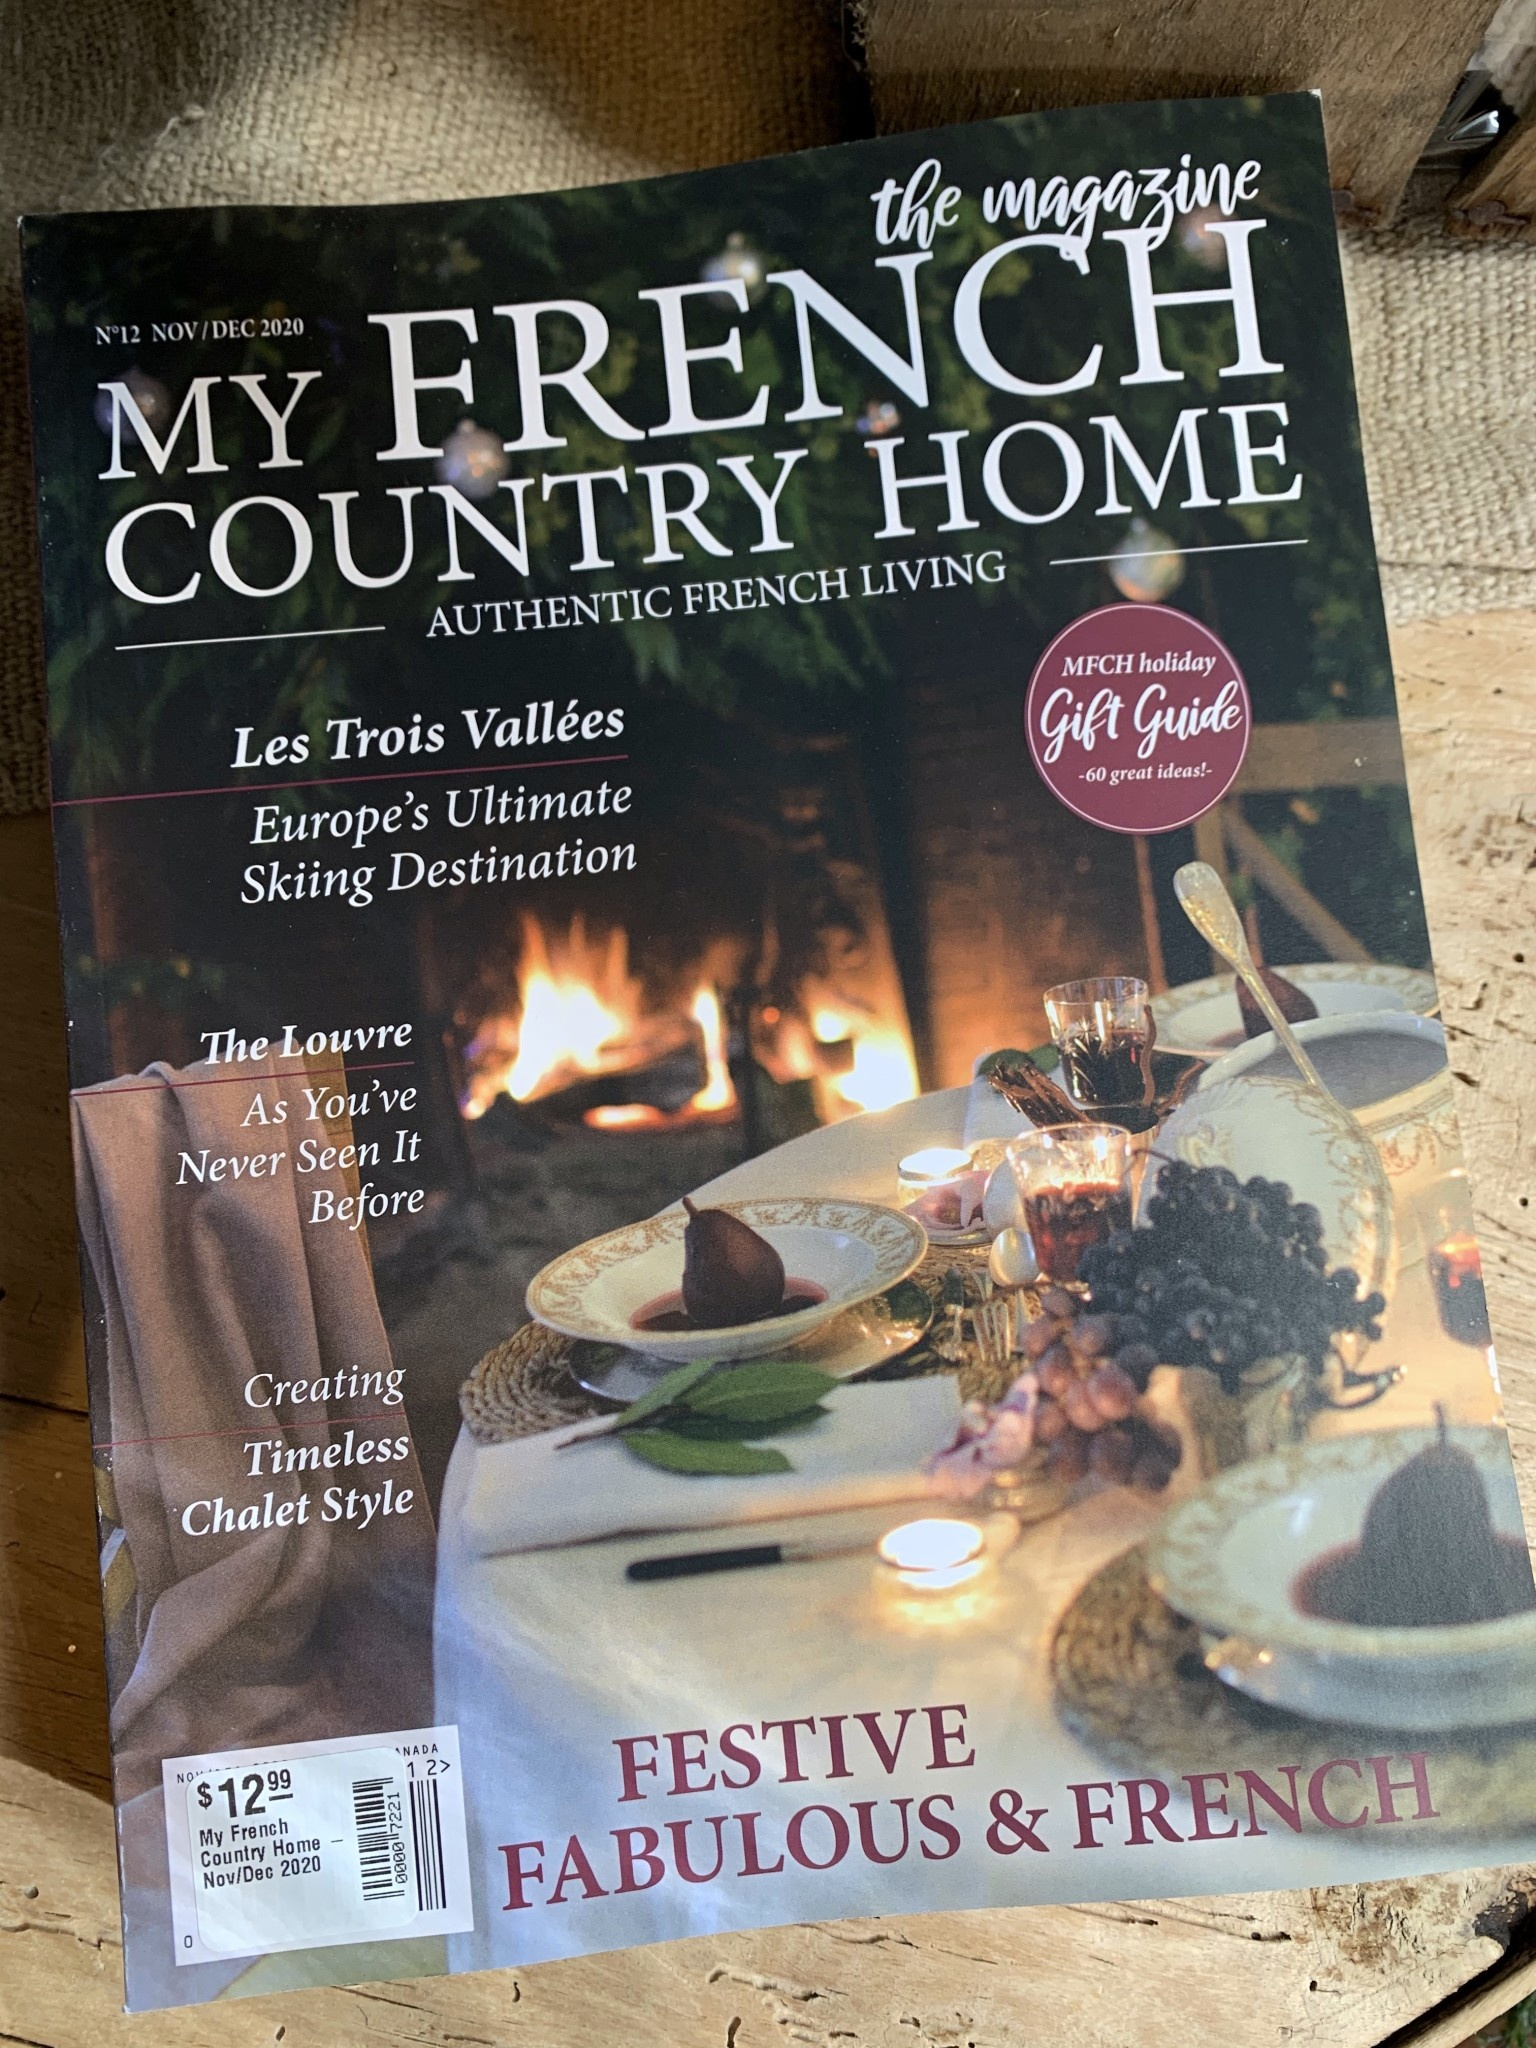 My French Country Home Magazine Nov/Dec 2020